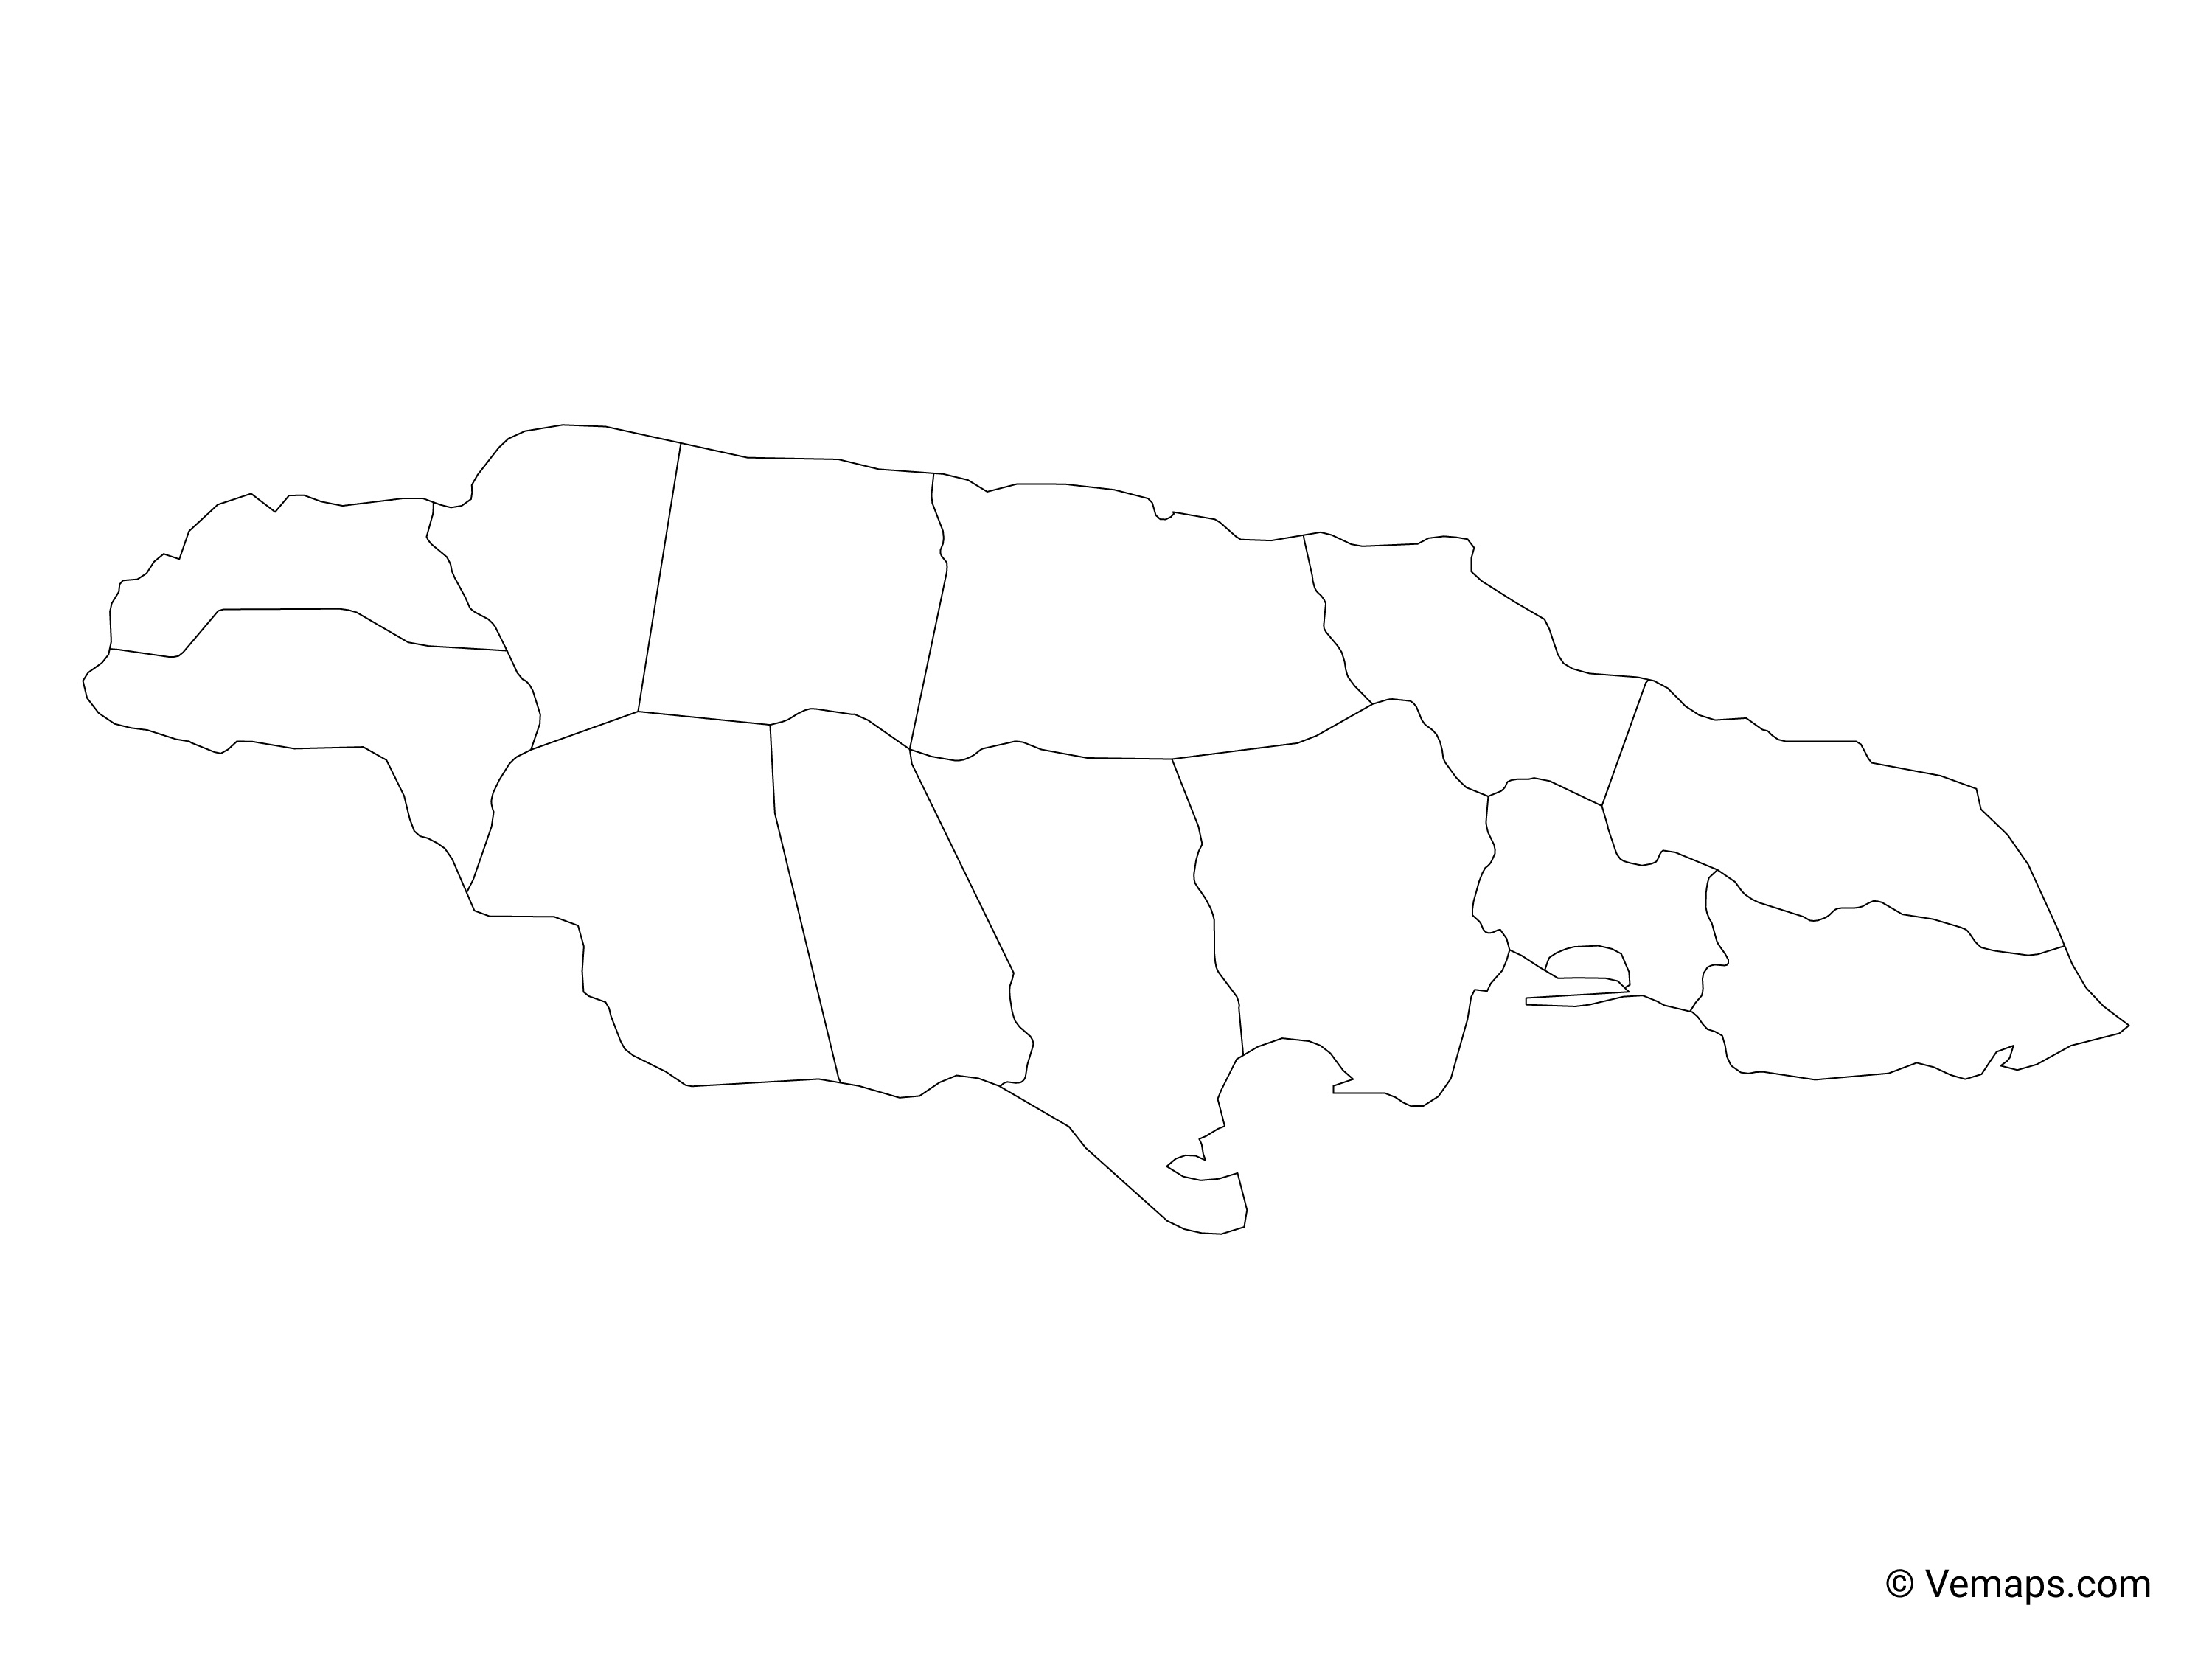 Outline Map of Jamaica with Parishes (no labels) | Free Vector Maps